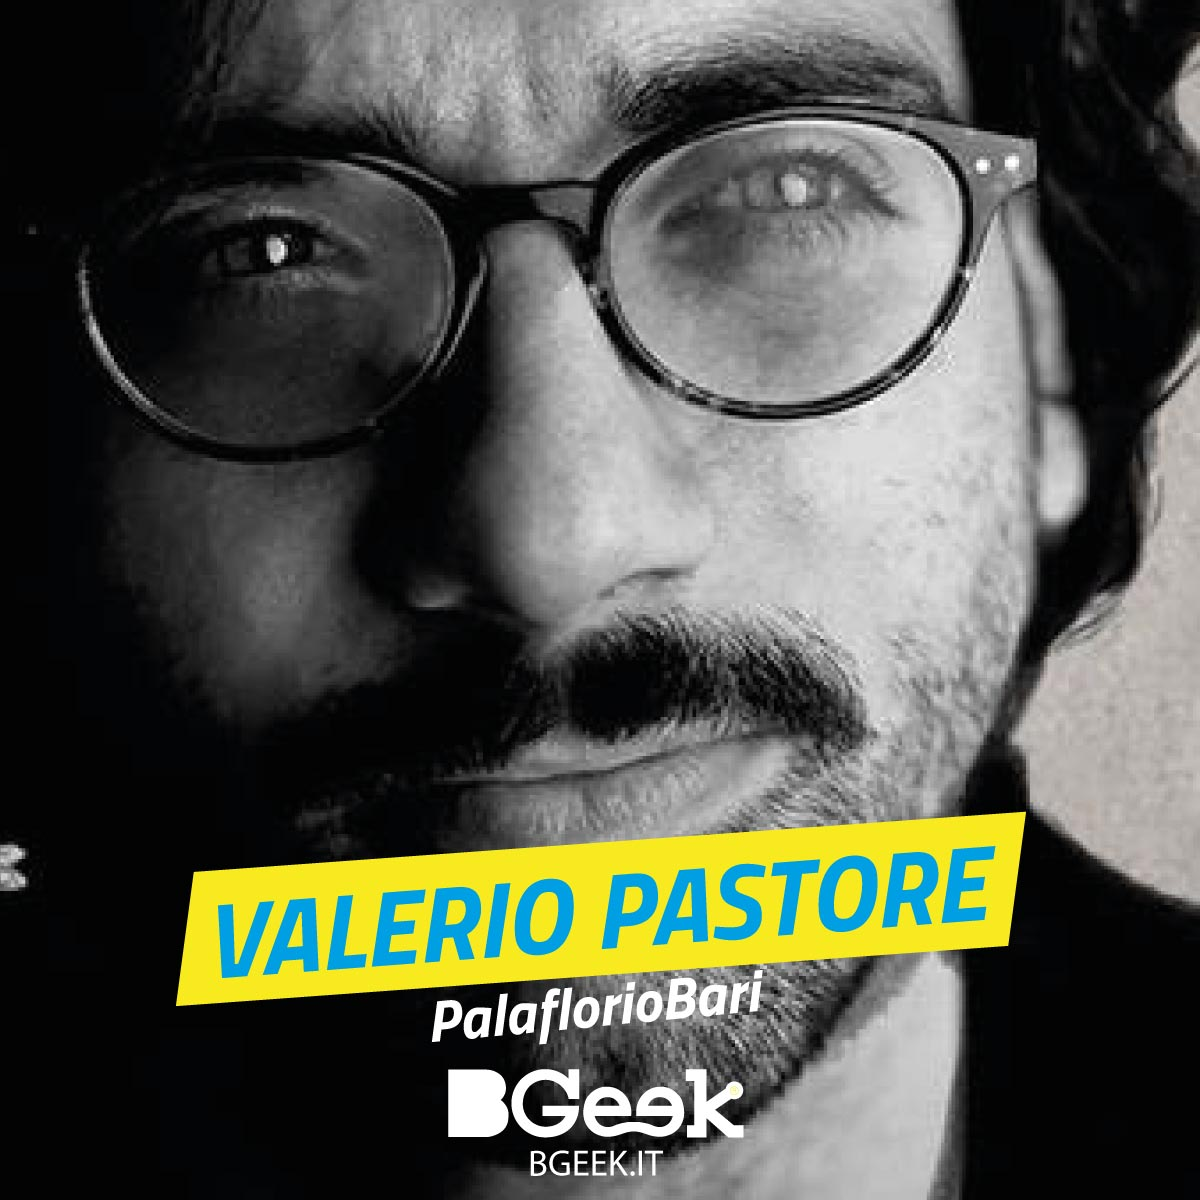 Bgeek_website_ospiti_1200x1200_Valerio_pastore